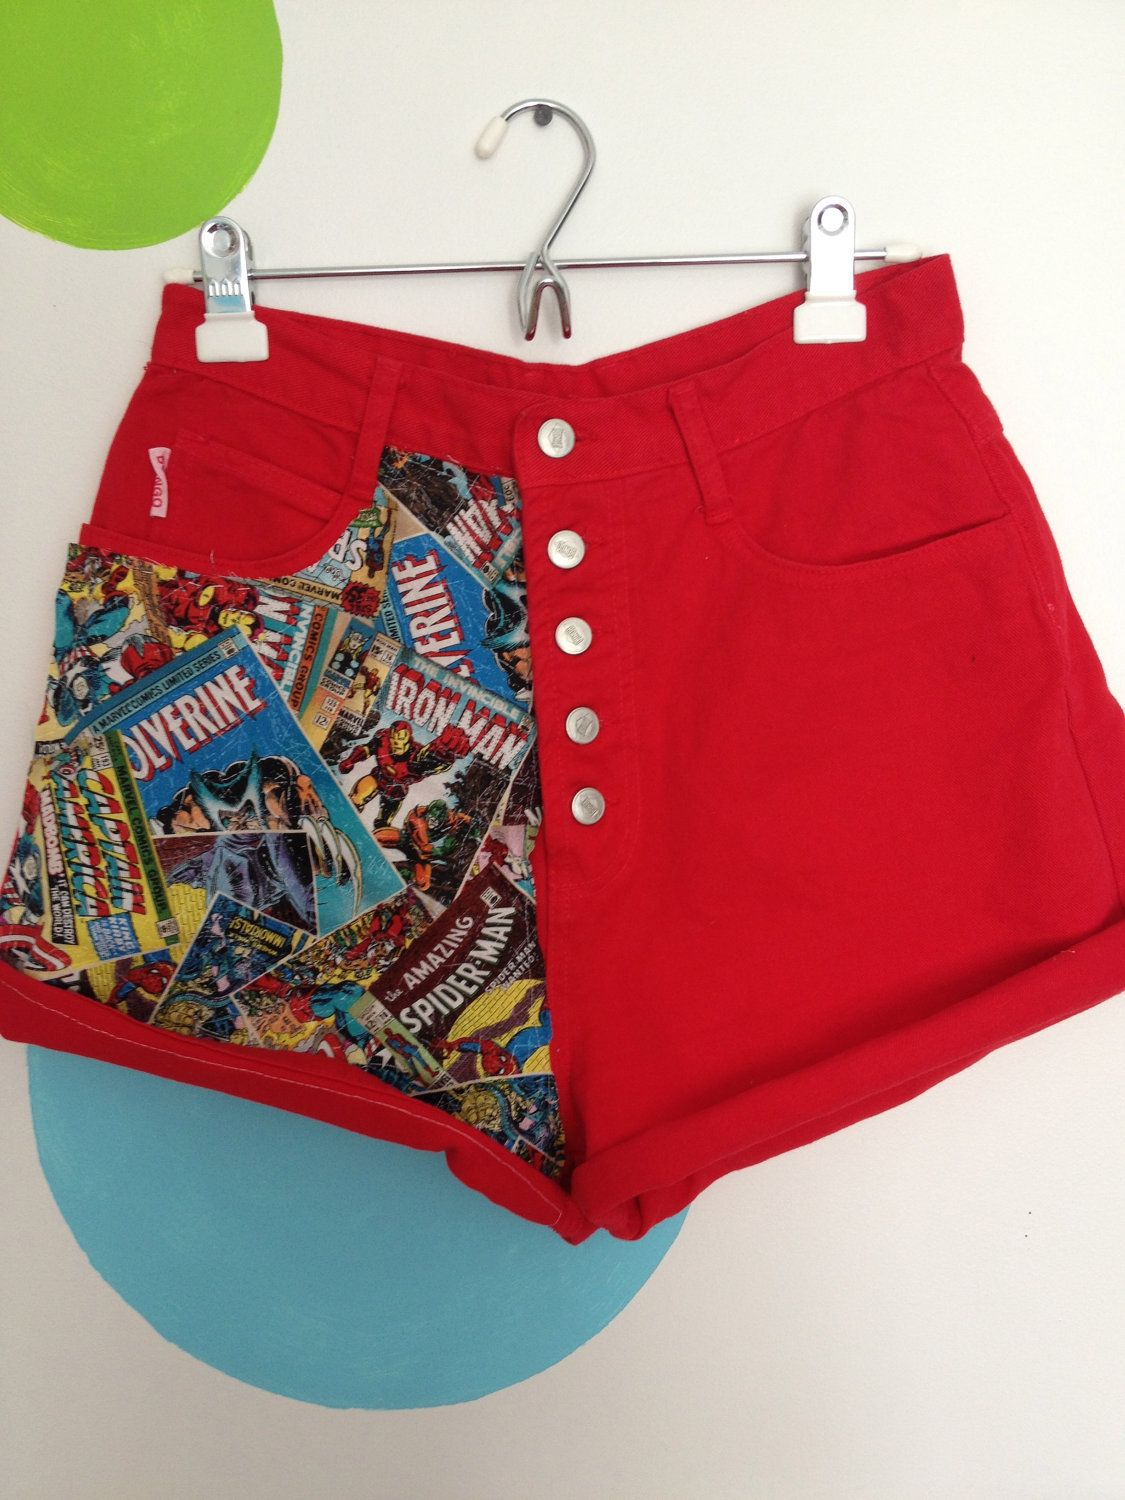 Red High Waisted Jean Shorts with Comic Book Fabric | Tessuti ...